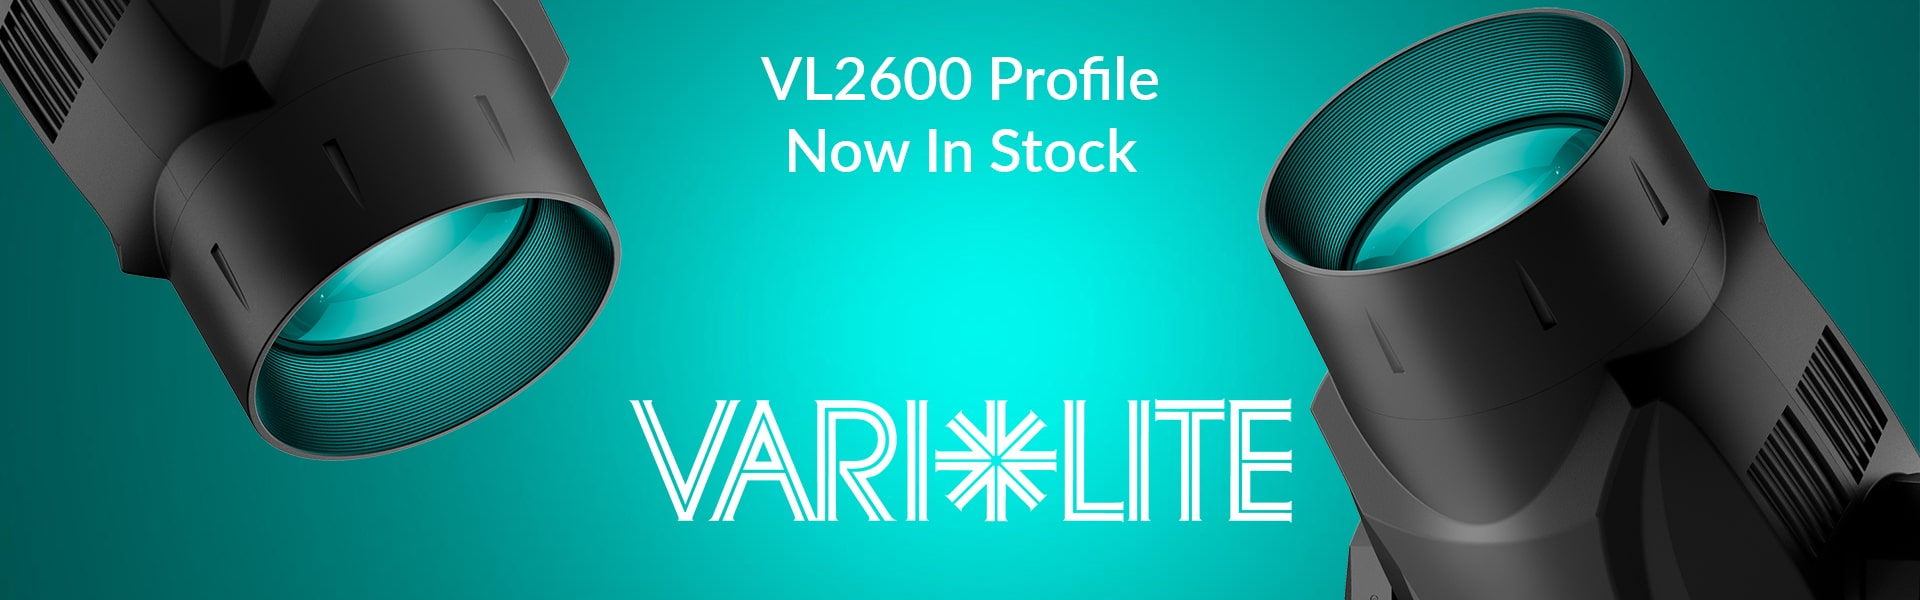 VariLite VL2600 Profile Available for Hire